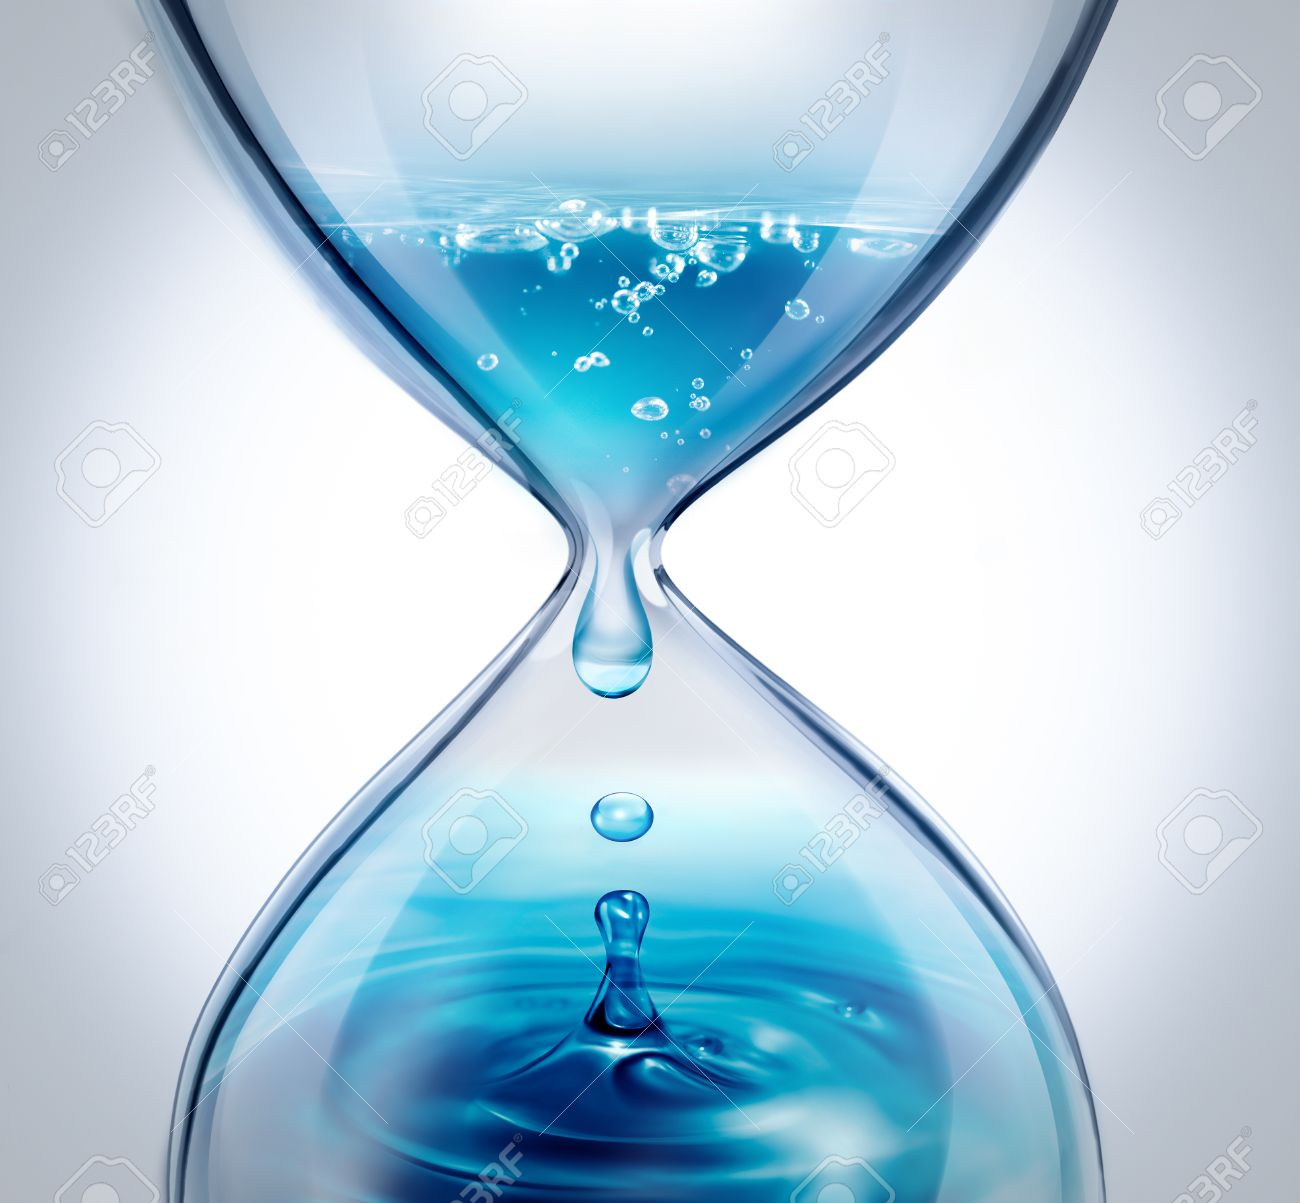 hourglass with dripping water close-up on a light background - 47320063